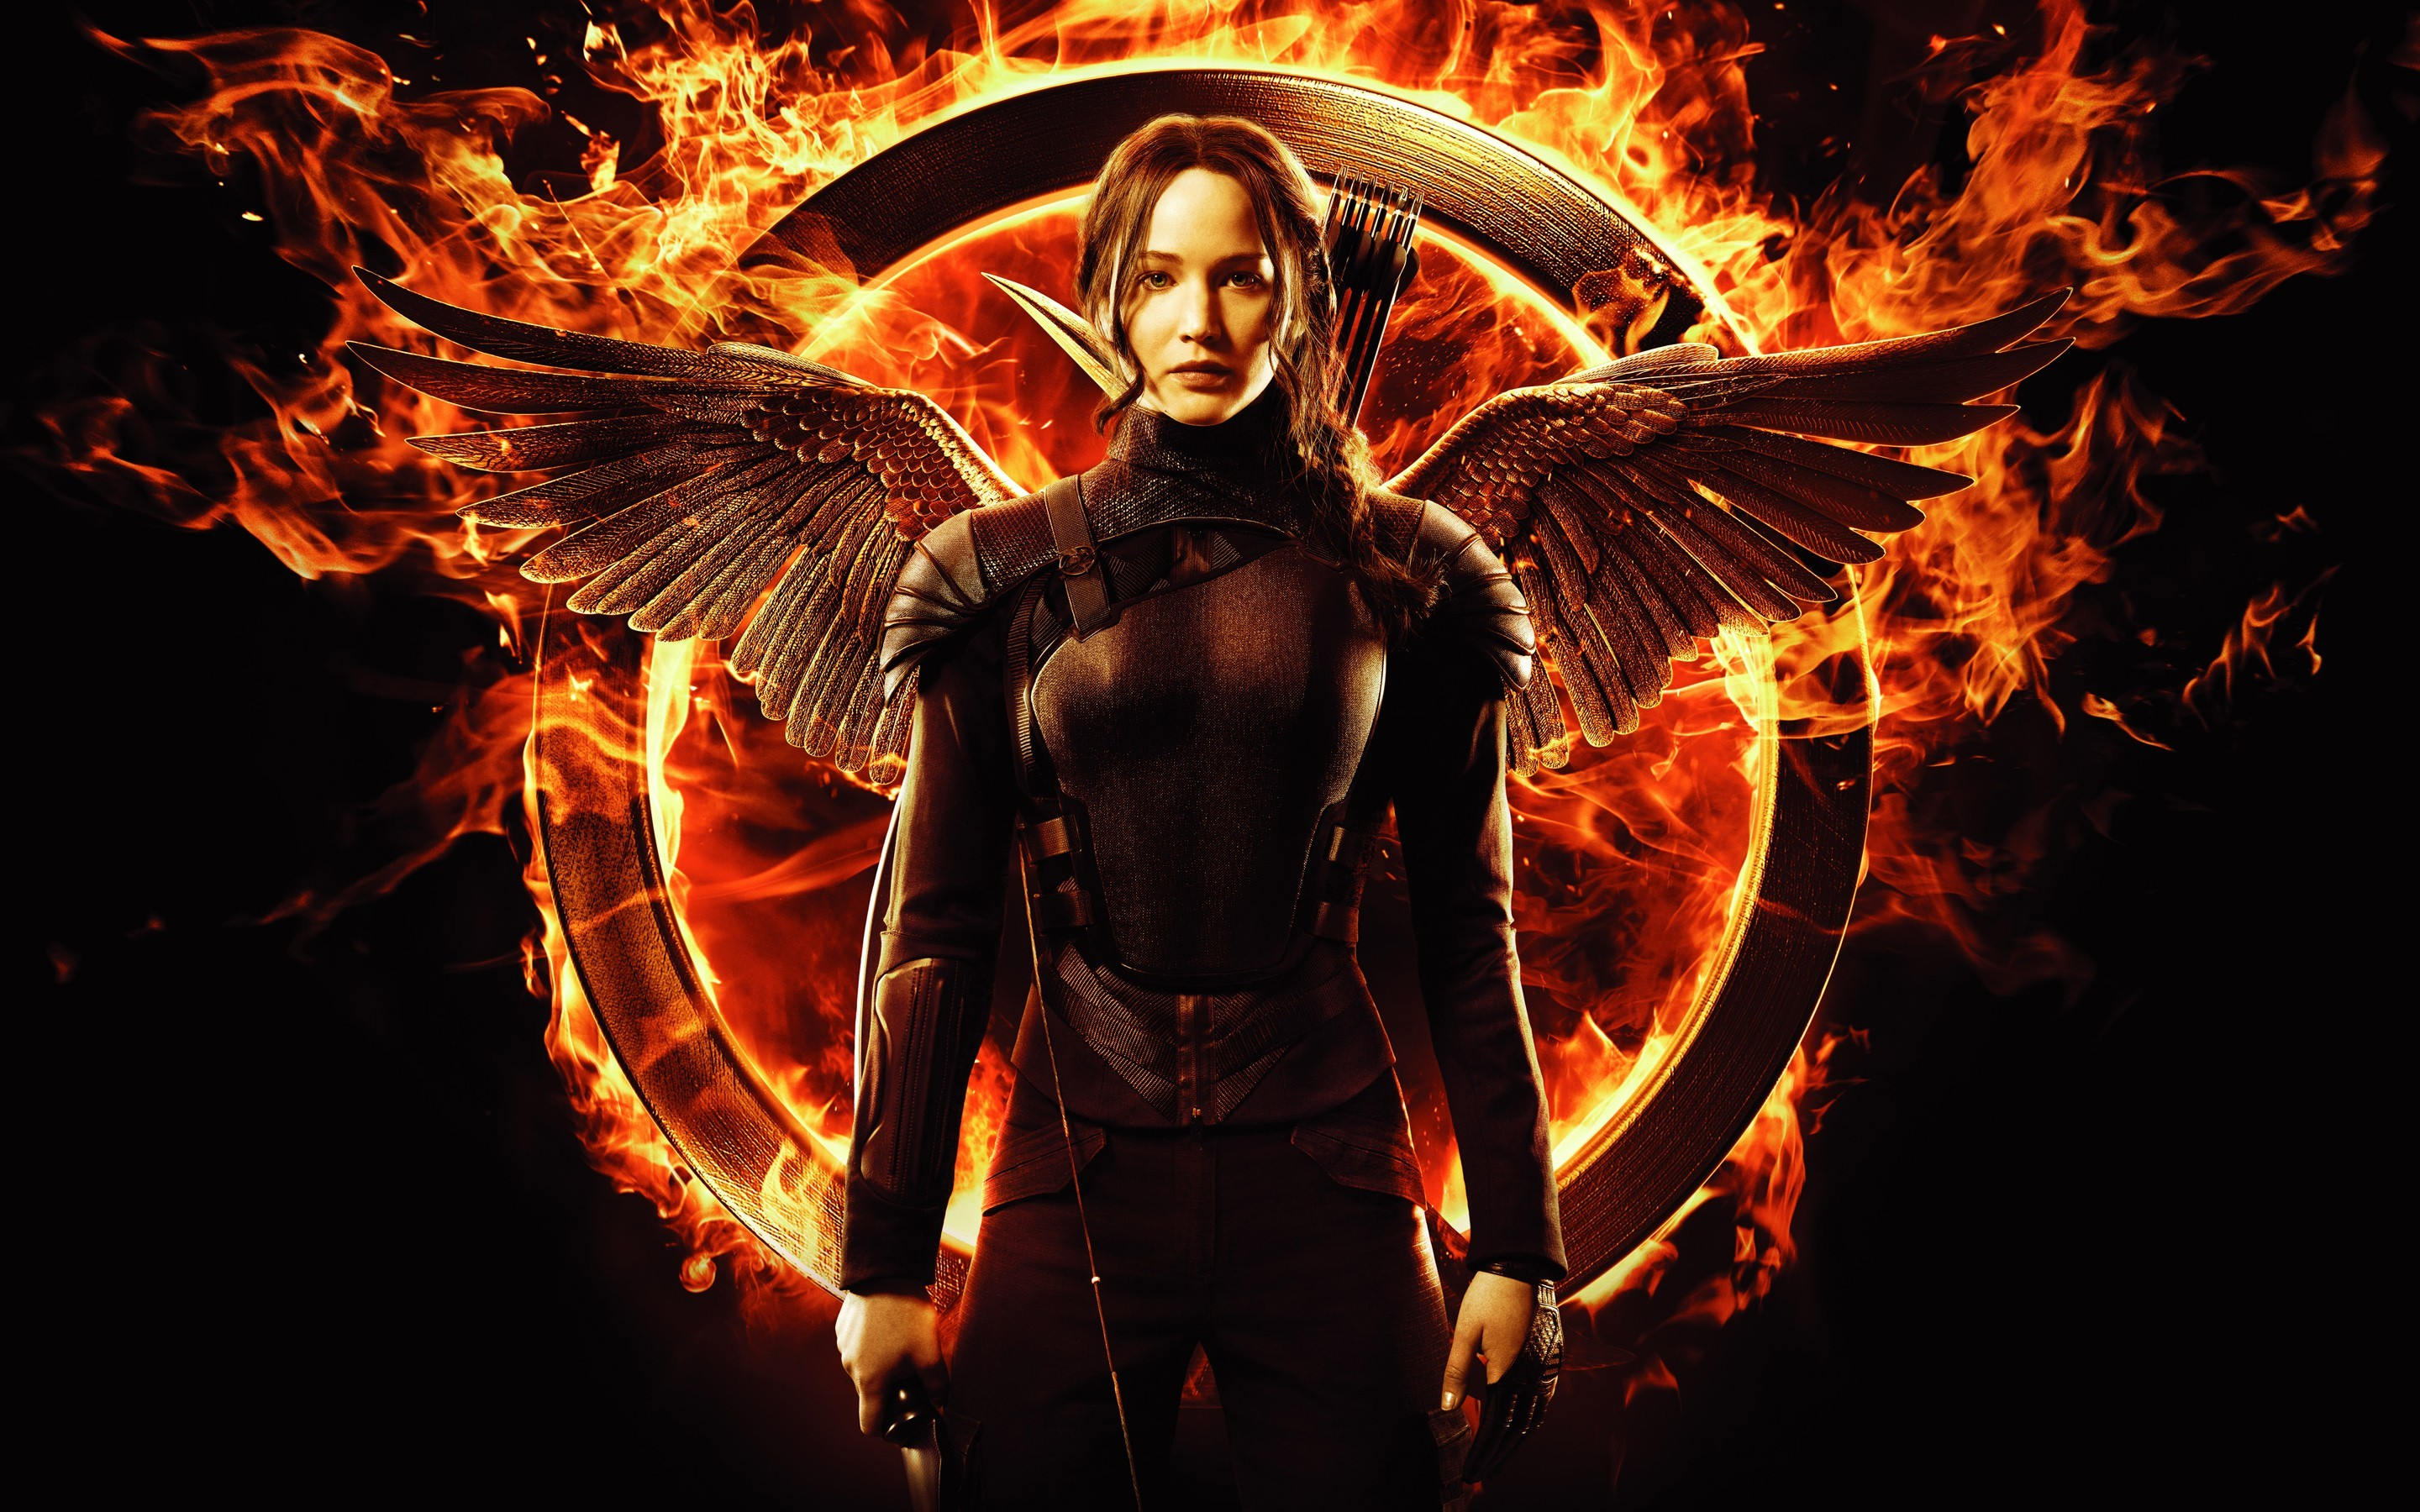 The Hunger Games Wallpaper (78+ images)